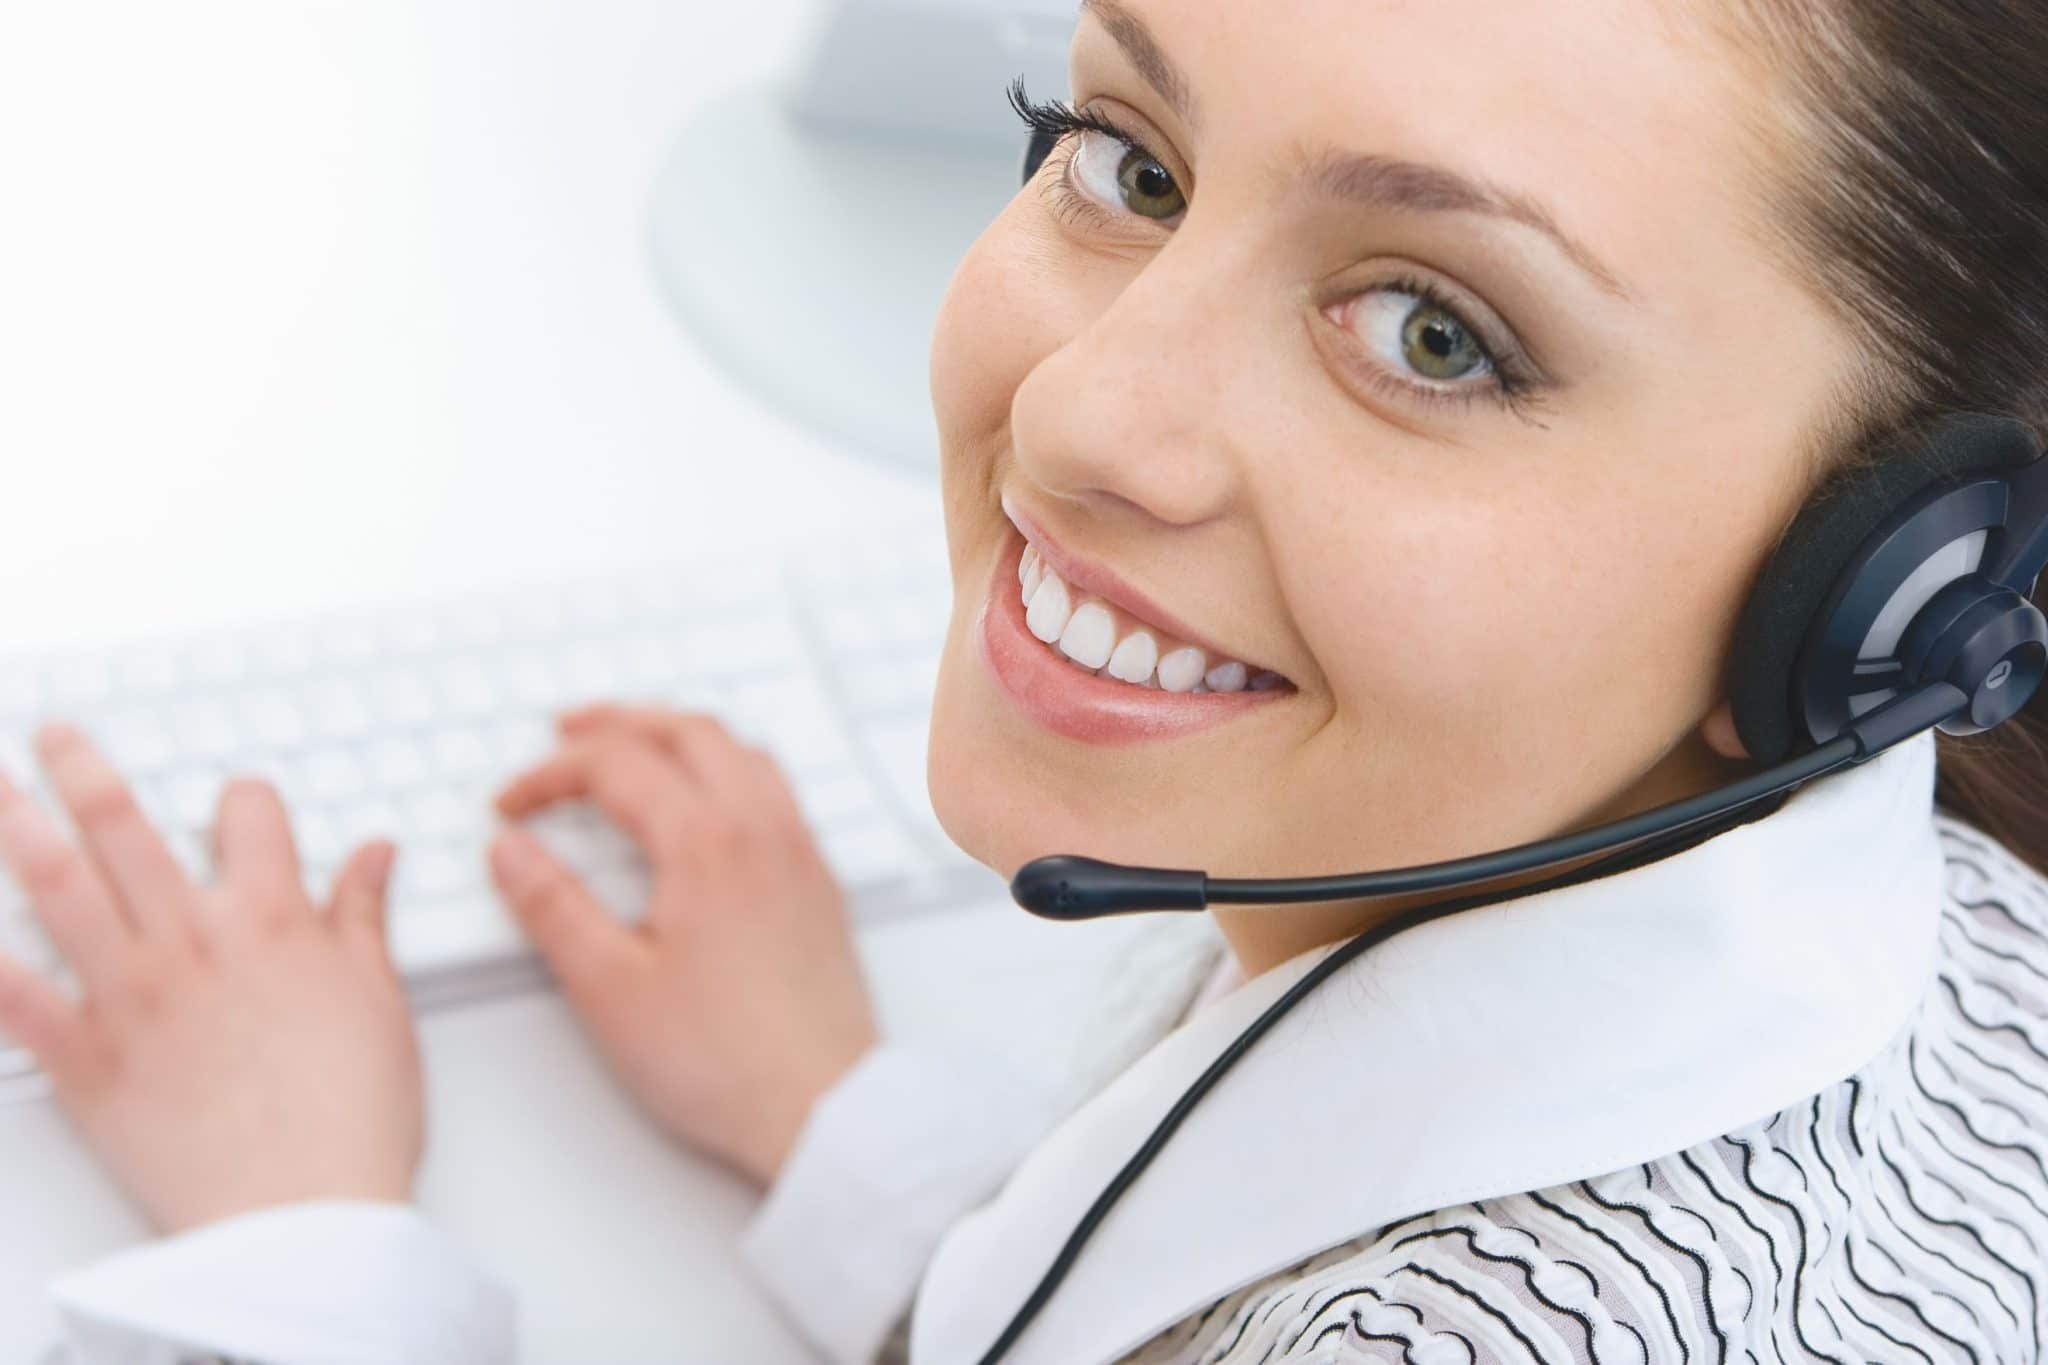 24-7-365 I.T & Technical Support for Business